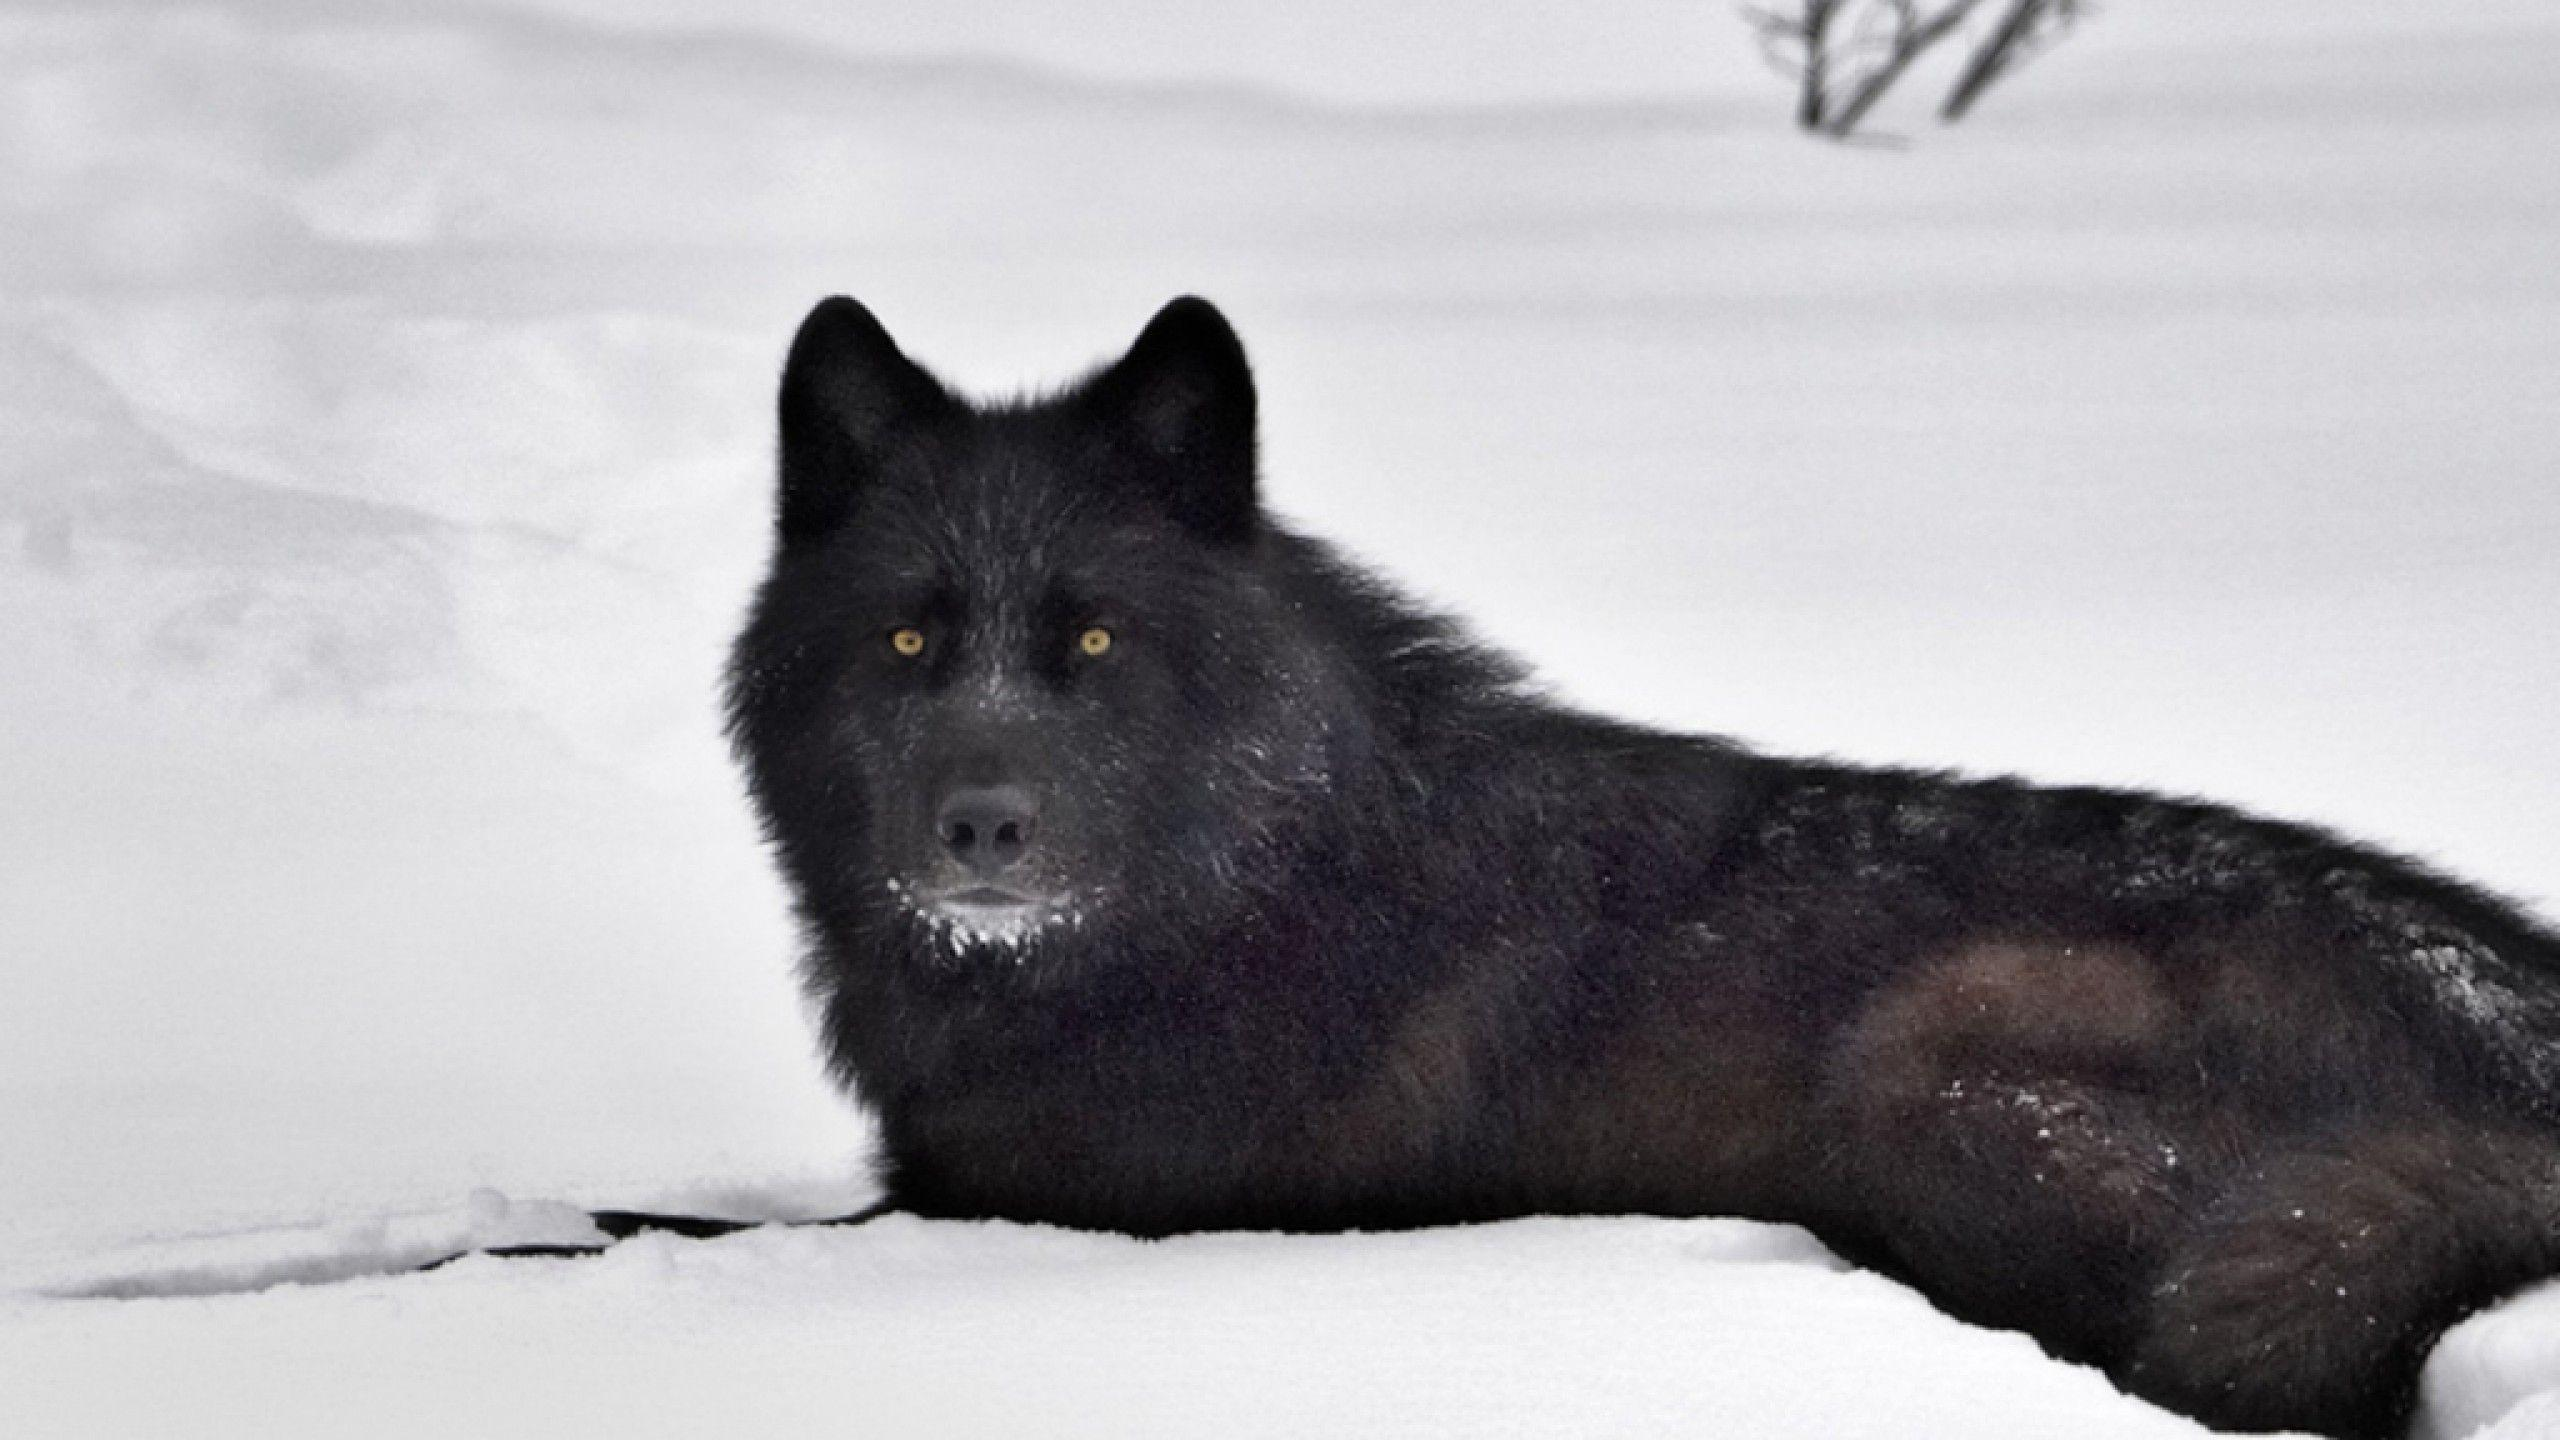 Hd wallpaper wolf - Black Wolf In Snow Wallpapers Hd Wallpapers Inn